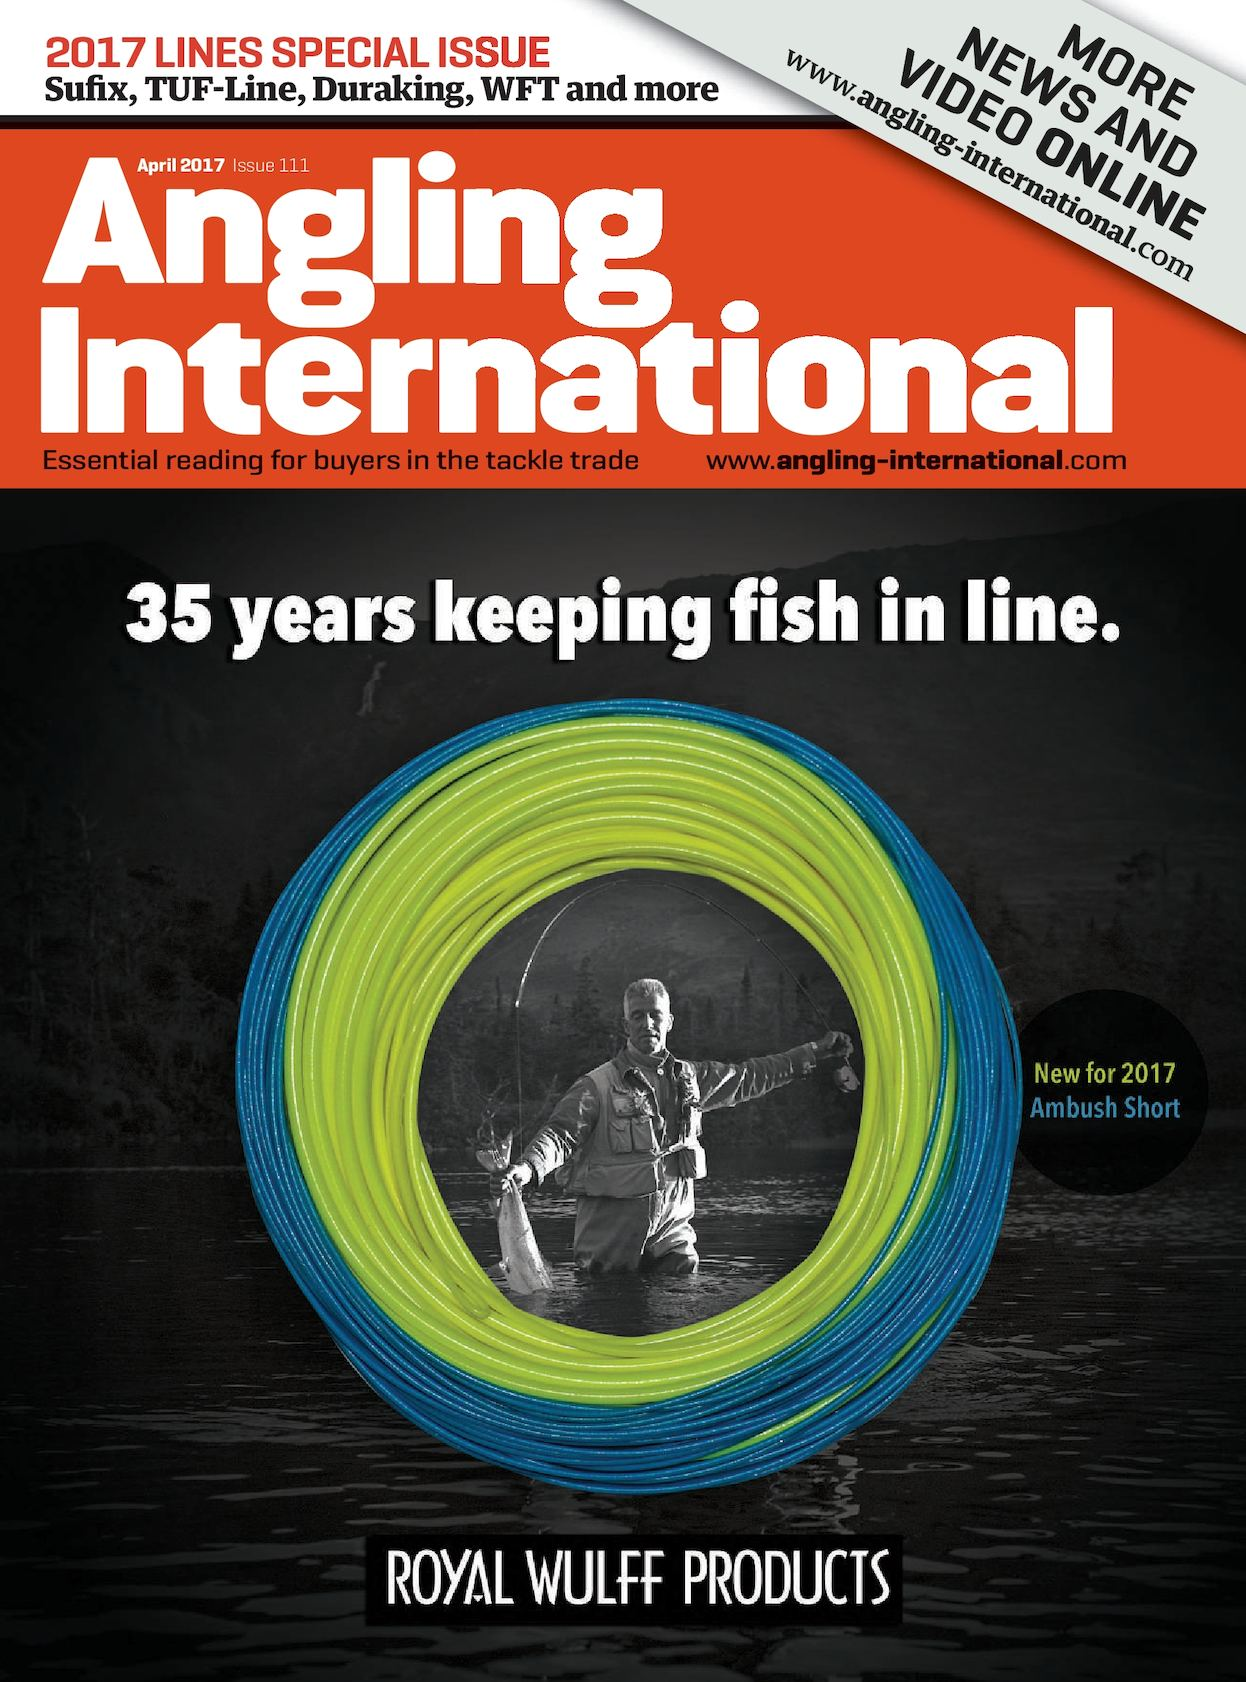 Calaméo - Angling International - April 2017 - issue 111 847fc243dc57